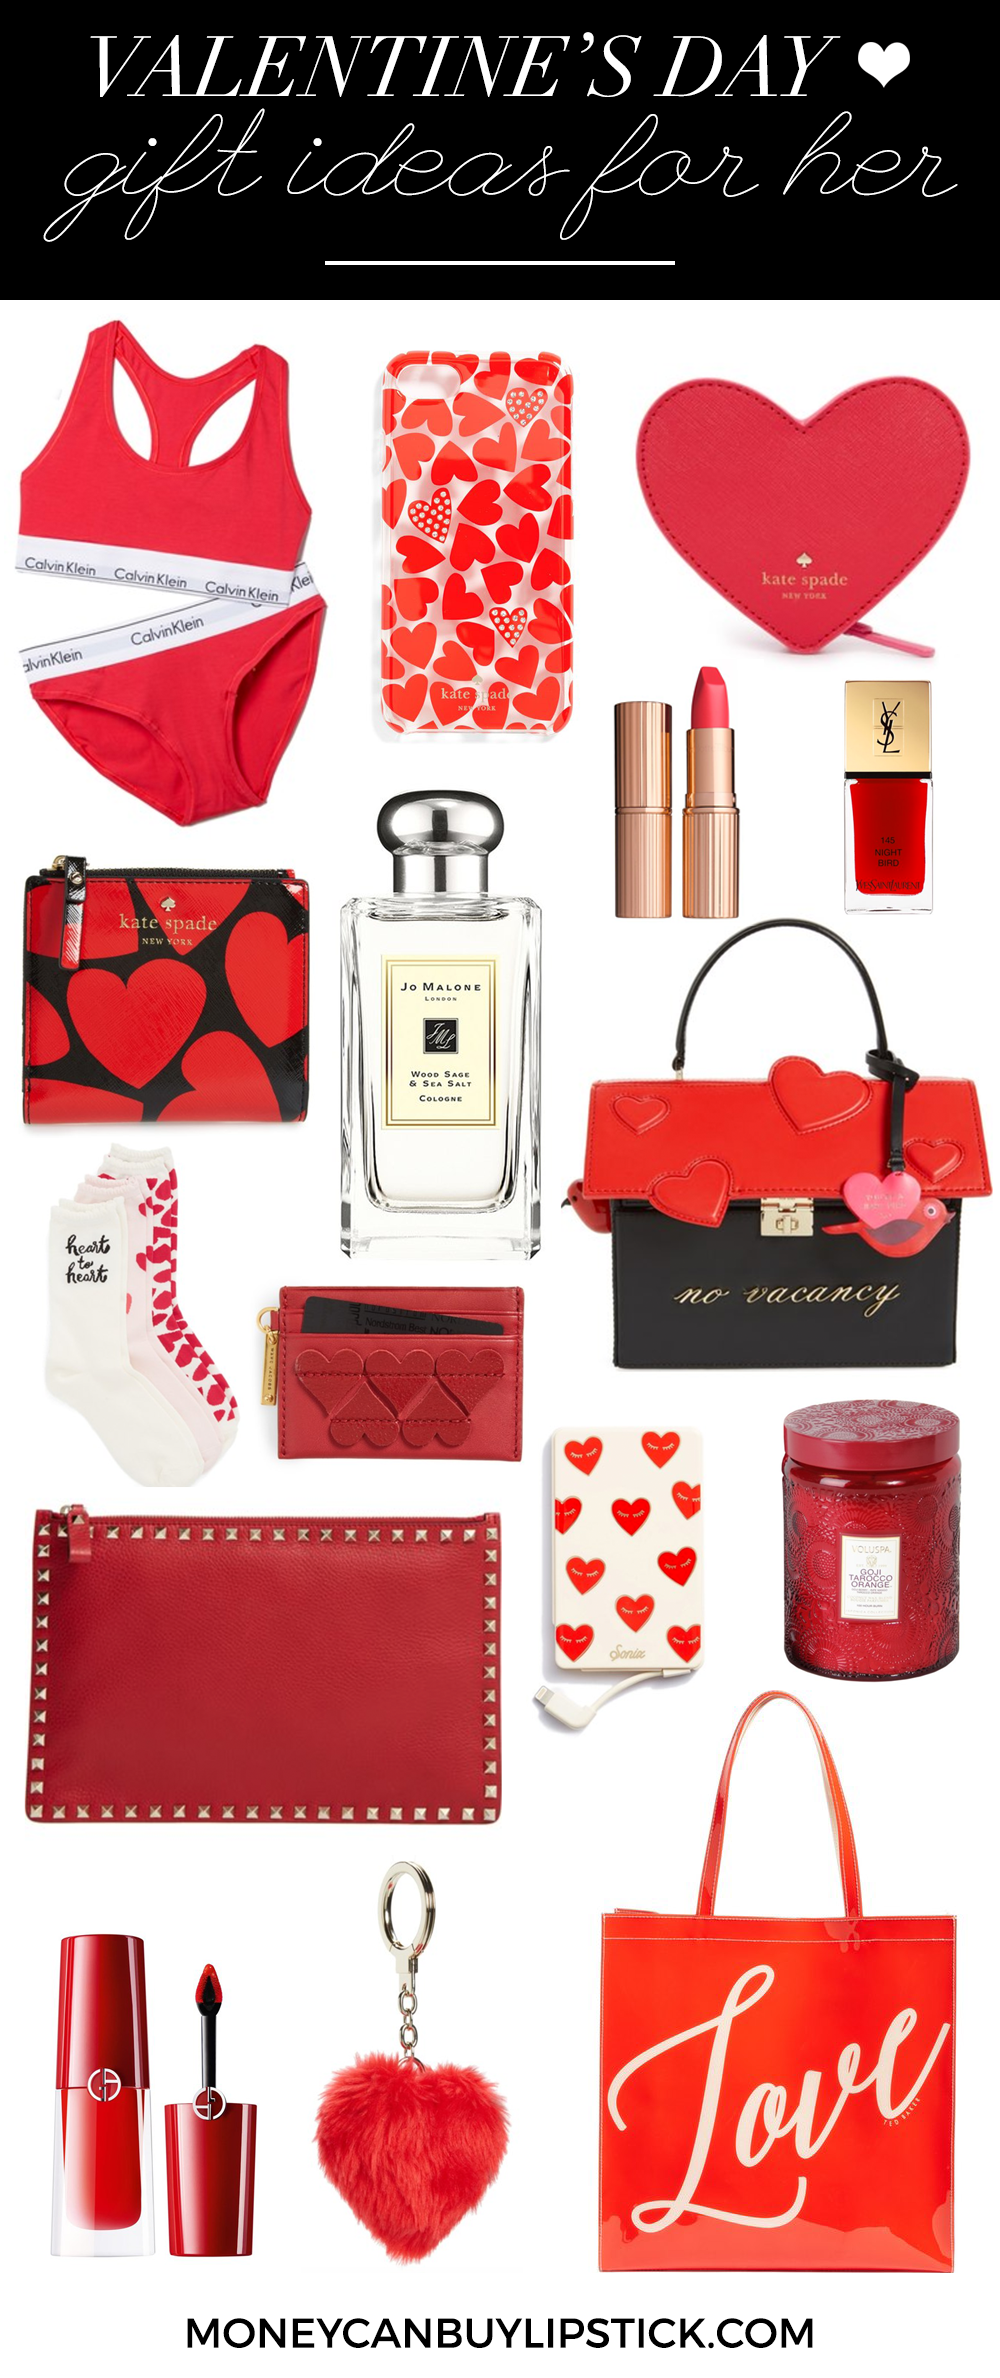 Gifts For Her Valentine S Day Valentines Gifts For Her Valentines Presents For Her Valentines Day Gifts For Friends